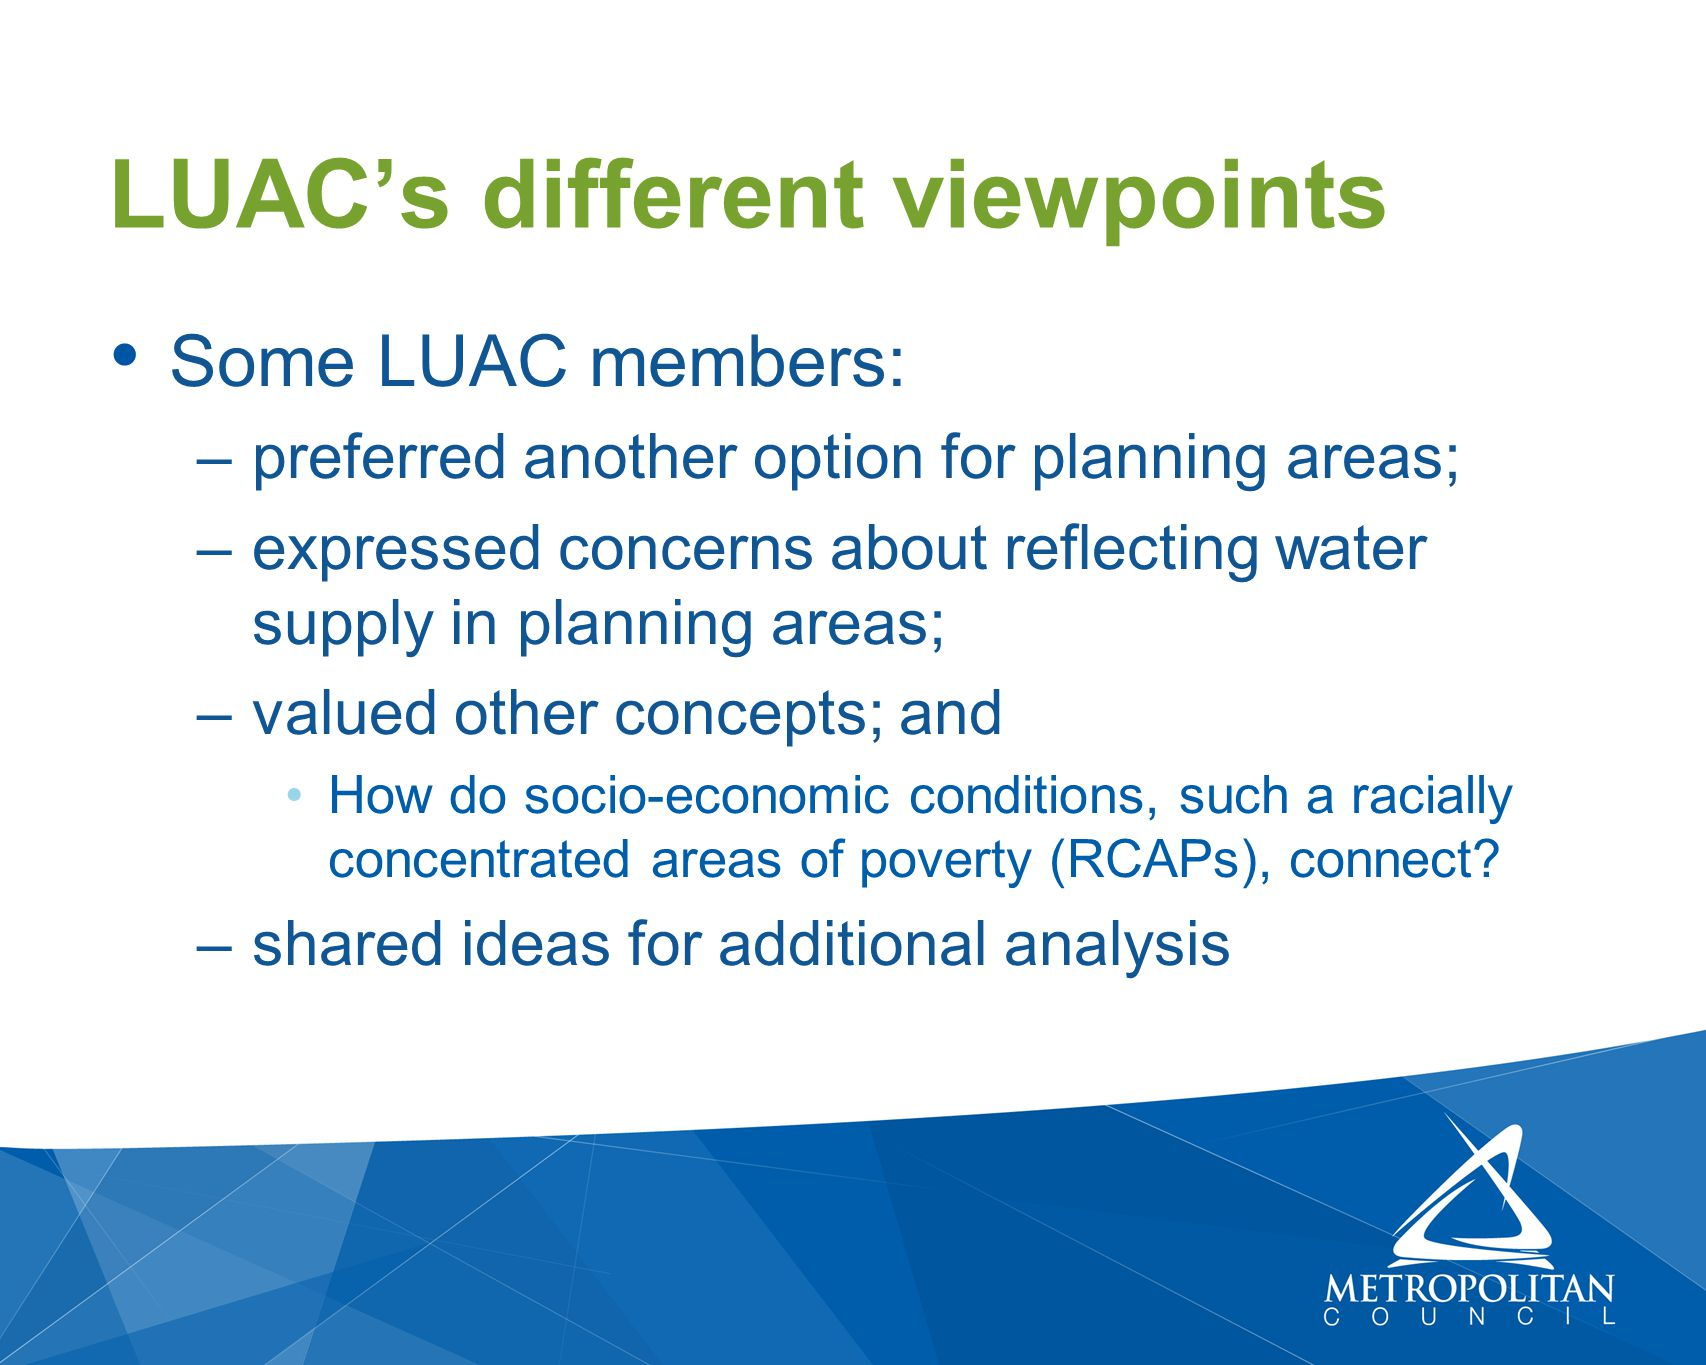 Some LUAC members: –preferred another option for planning areas; –expressed concerns about reflecting water supply in planning areas; –valued other co